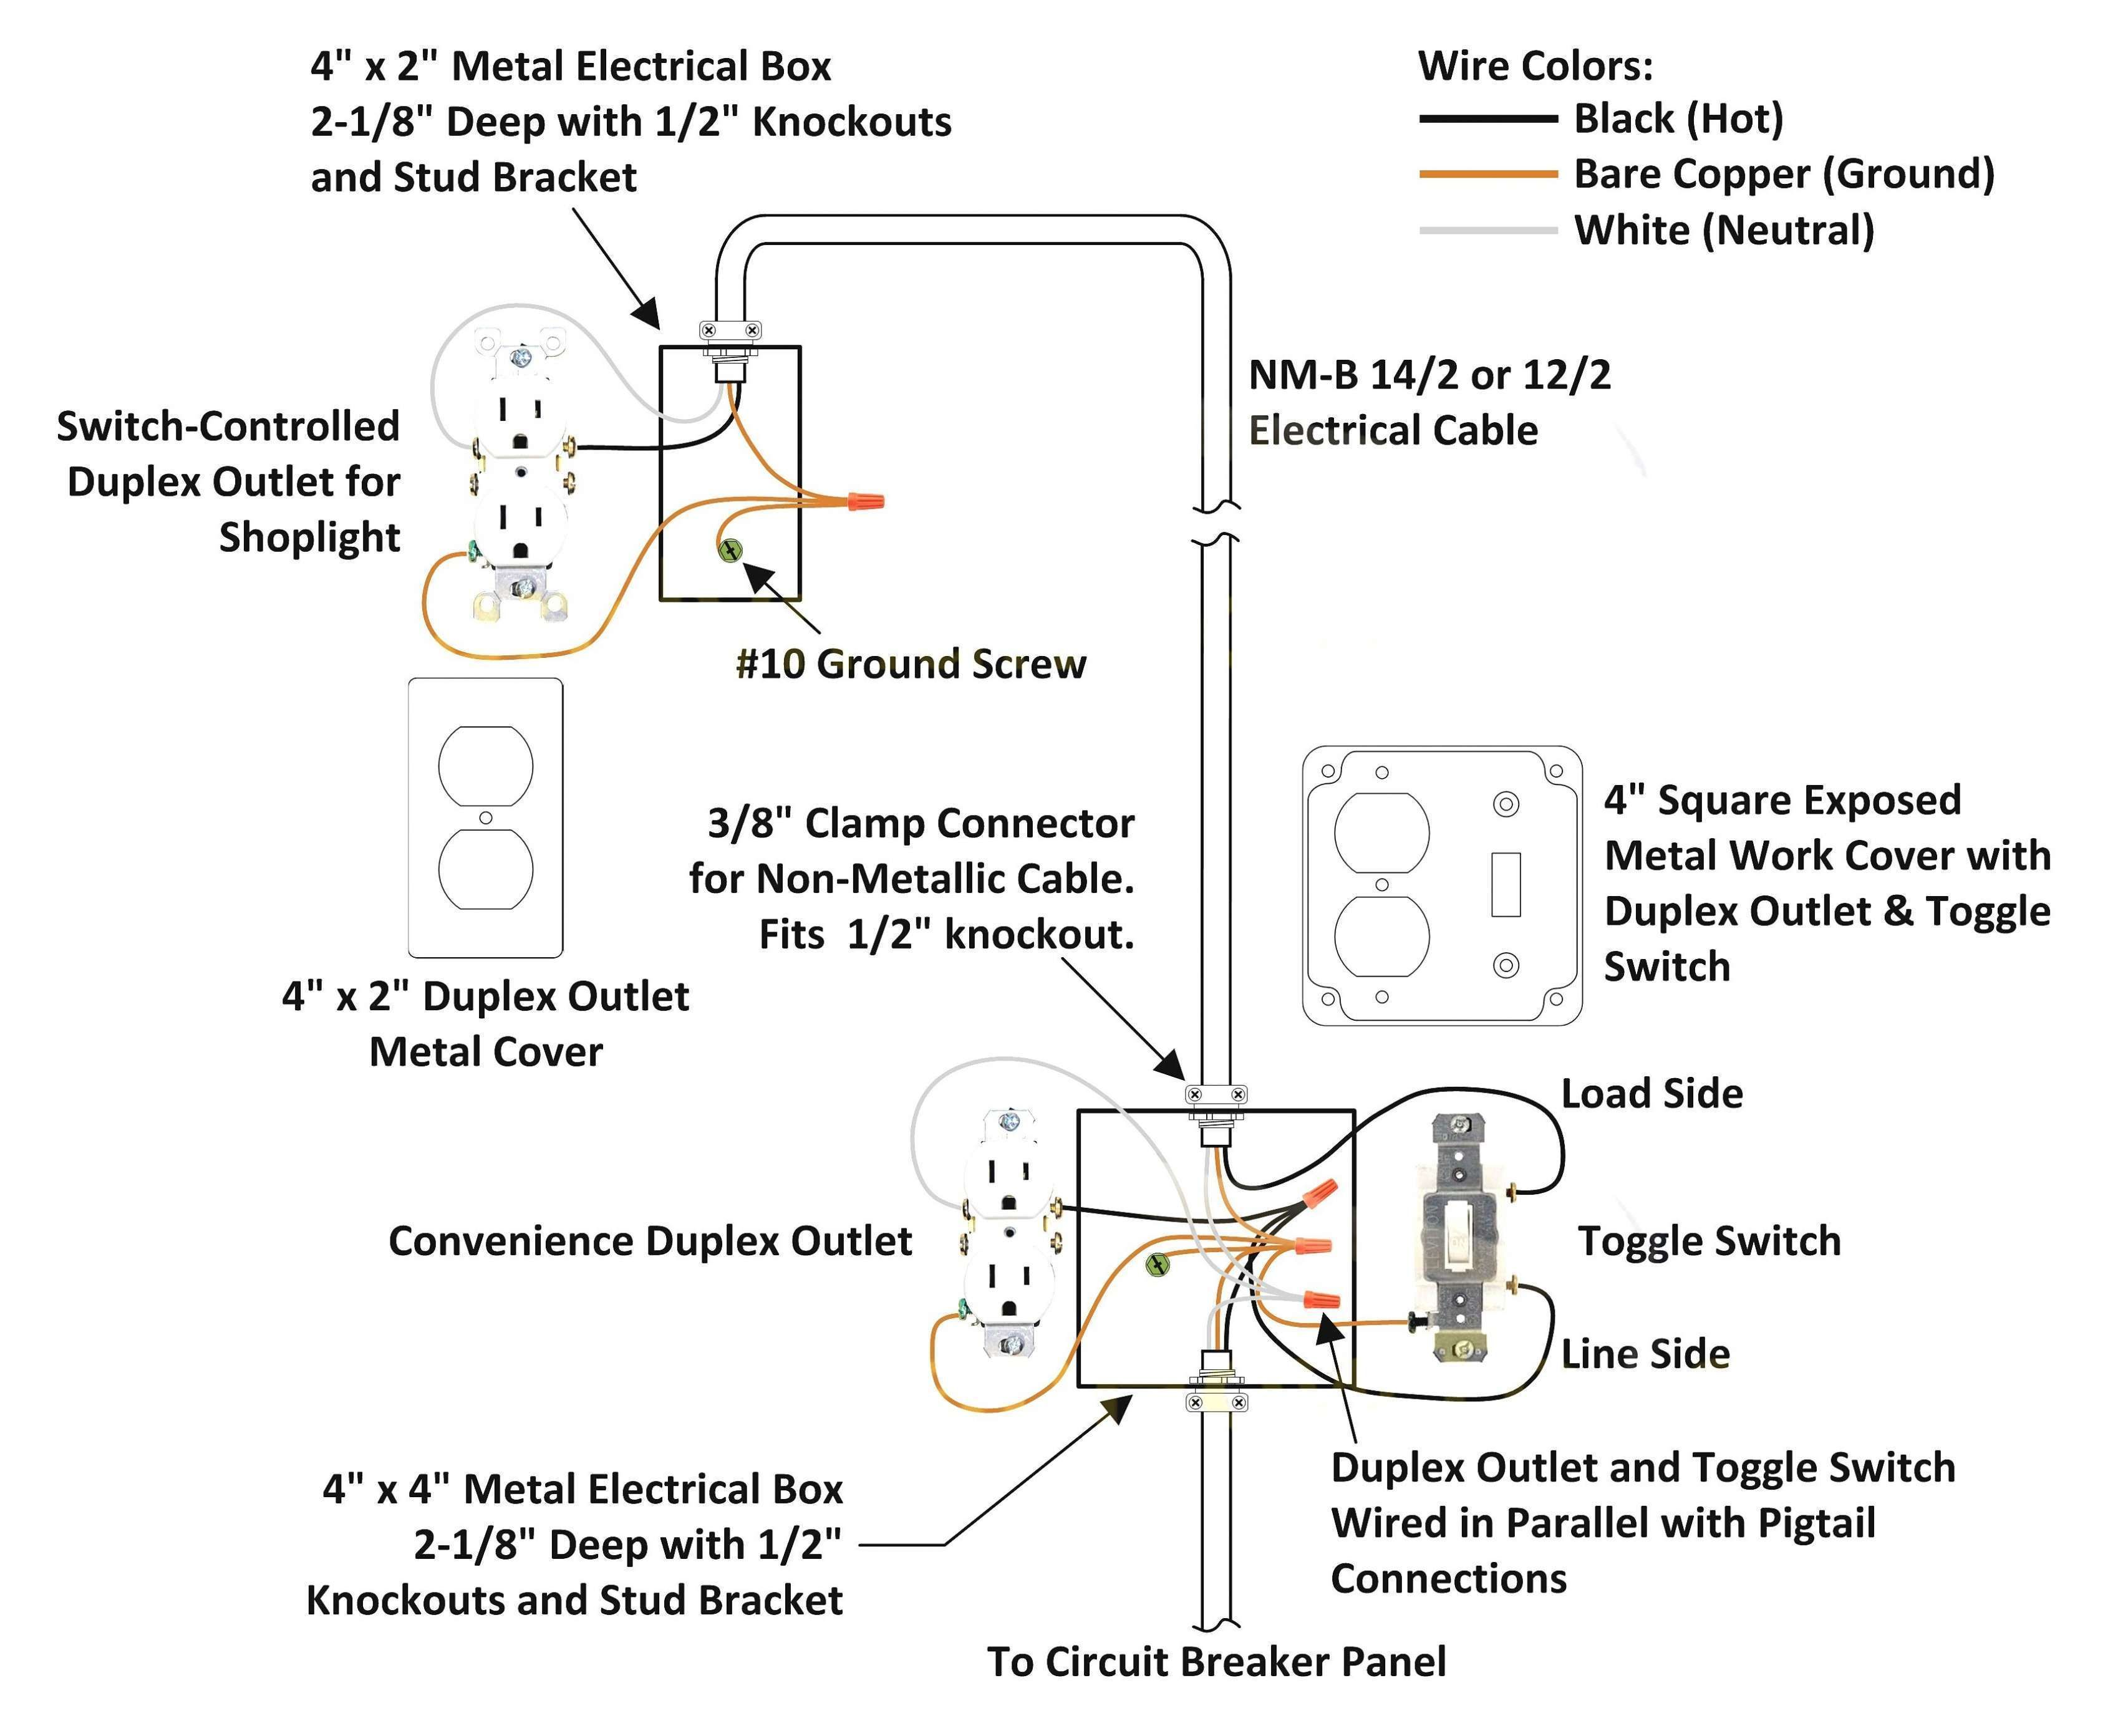 Wiring Diagram Fender Telecaster 3 Way Switch Valid Modern 3 Way And Electrical Switch Wiring Metal Electrical Box Electrical Symbols